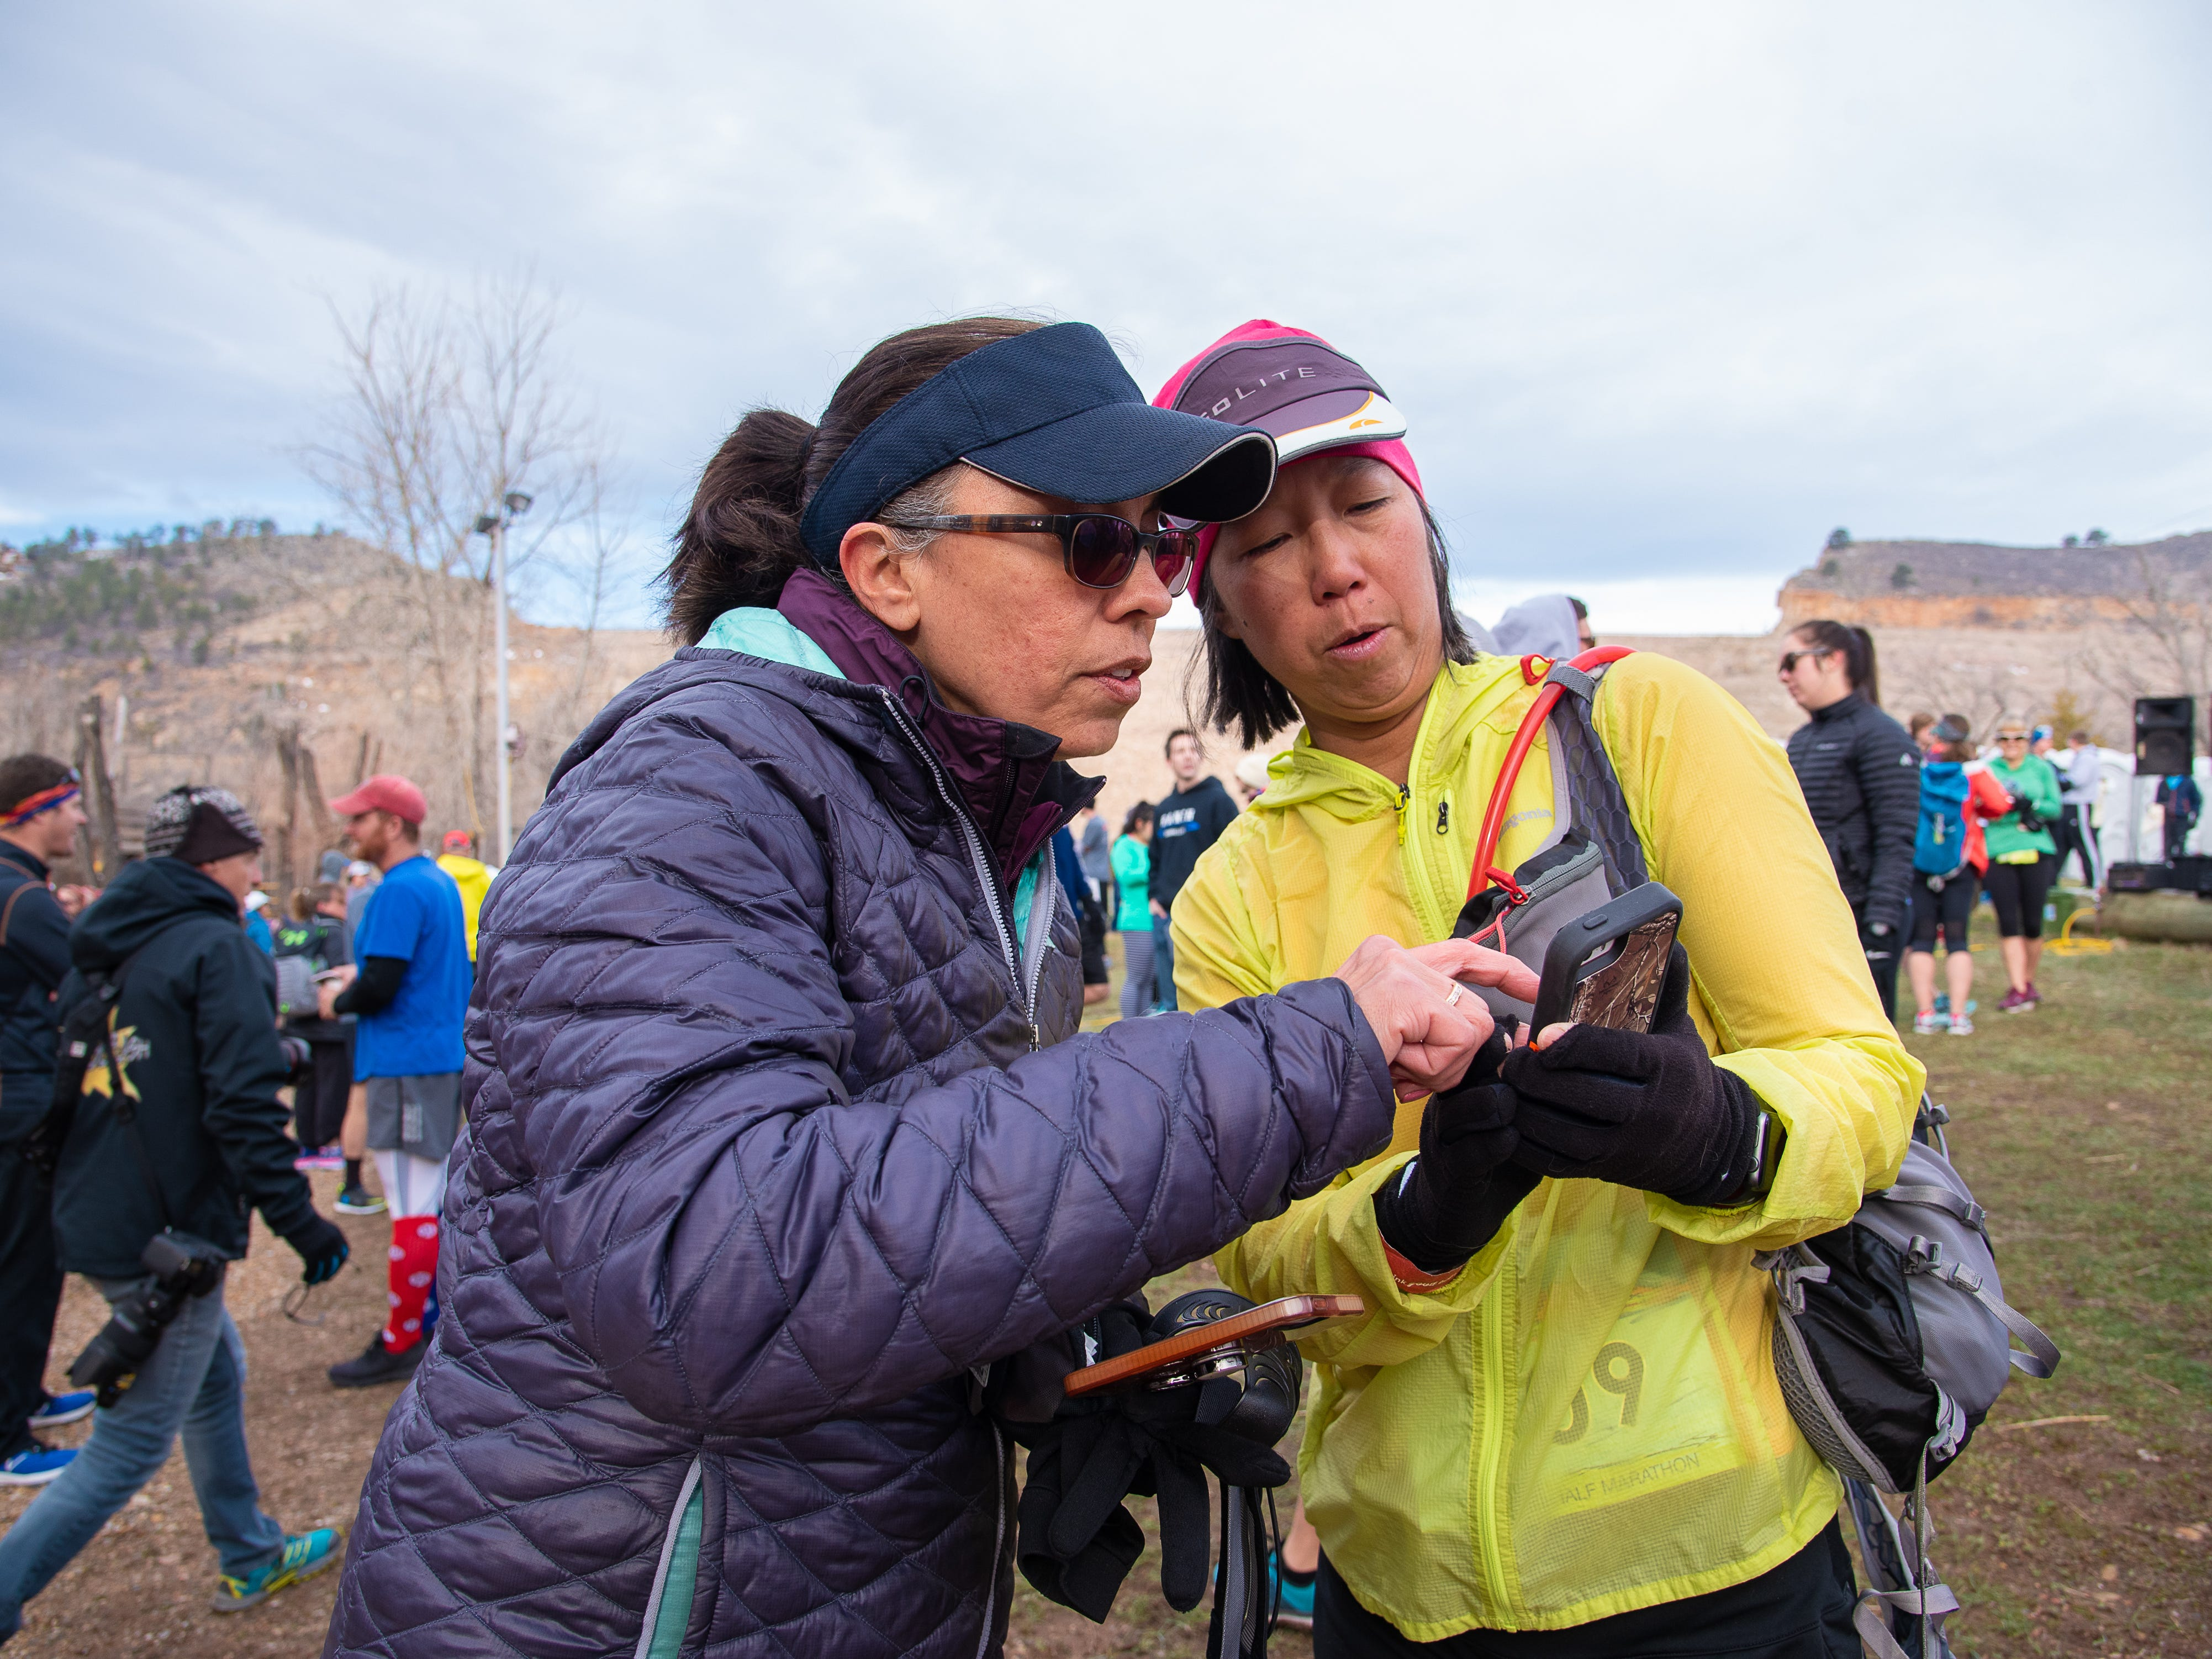 Participants Andrea Opper and Connie Hannig coordinate an app on their phones before the start of the Horsetooth Half Marathon on Sunday, April 14, 2019, in Fort Collins, Colo.